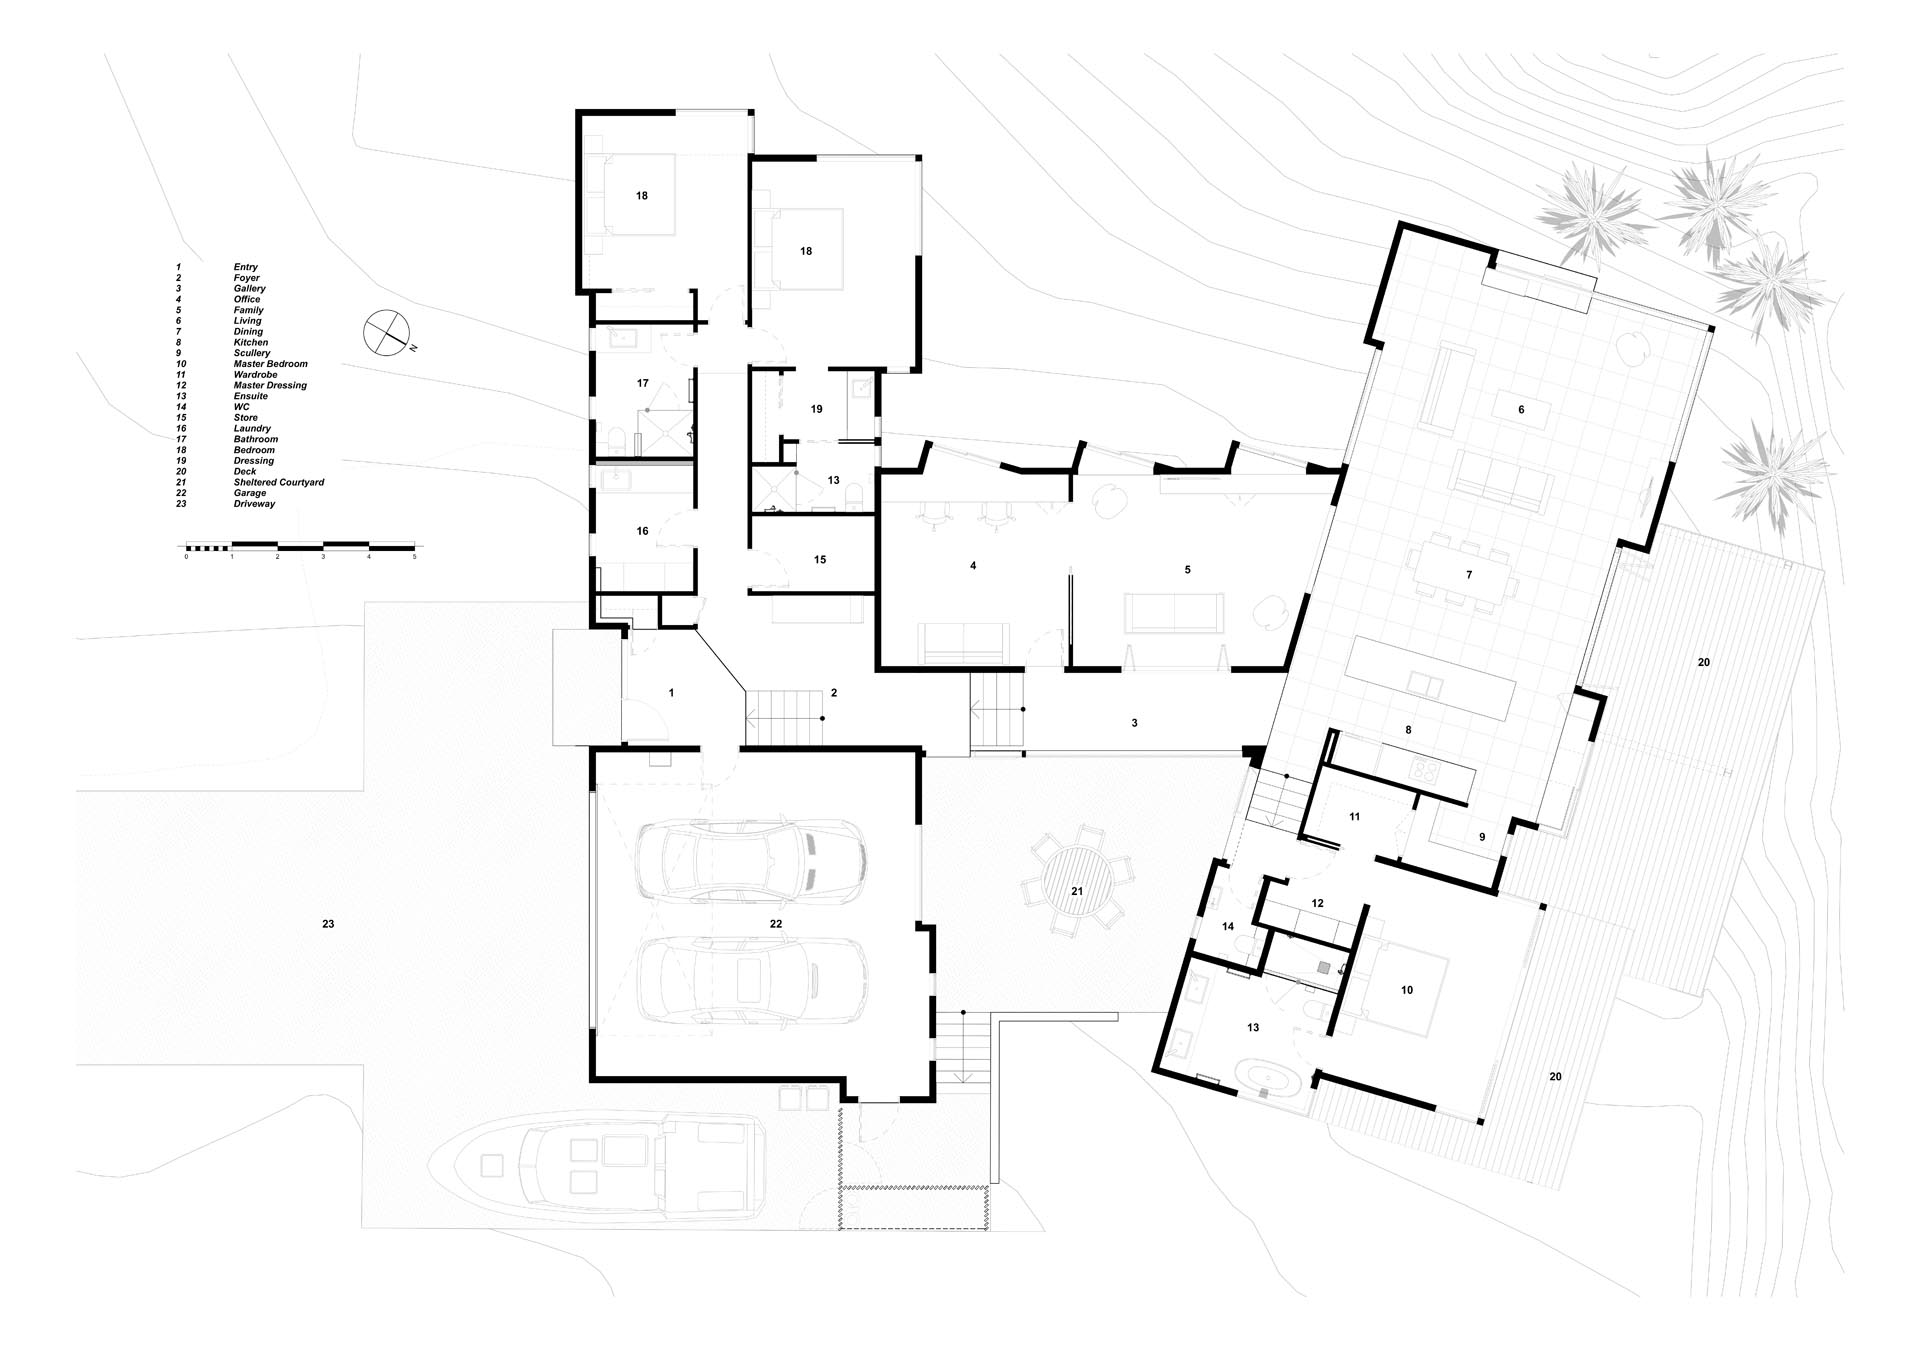 A modern house floor plan with a sheltered courtyard.